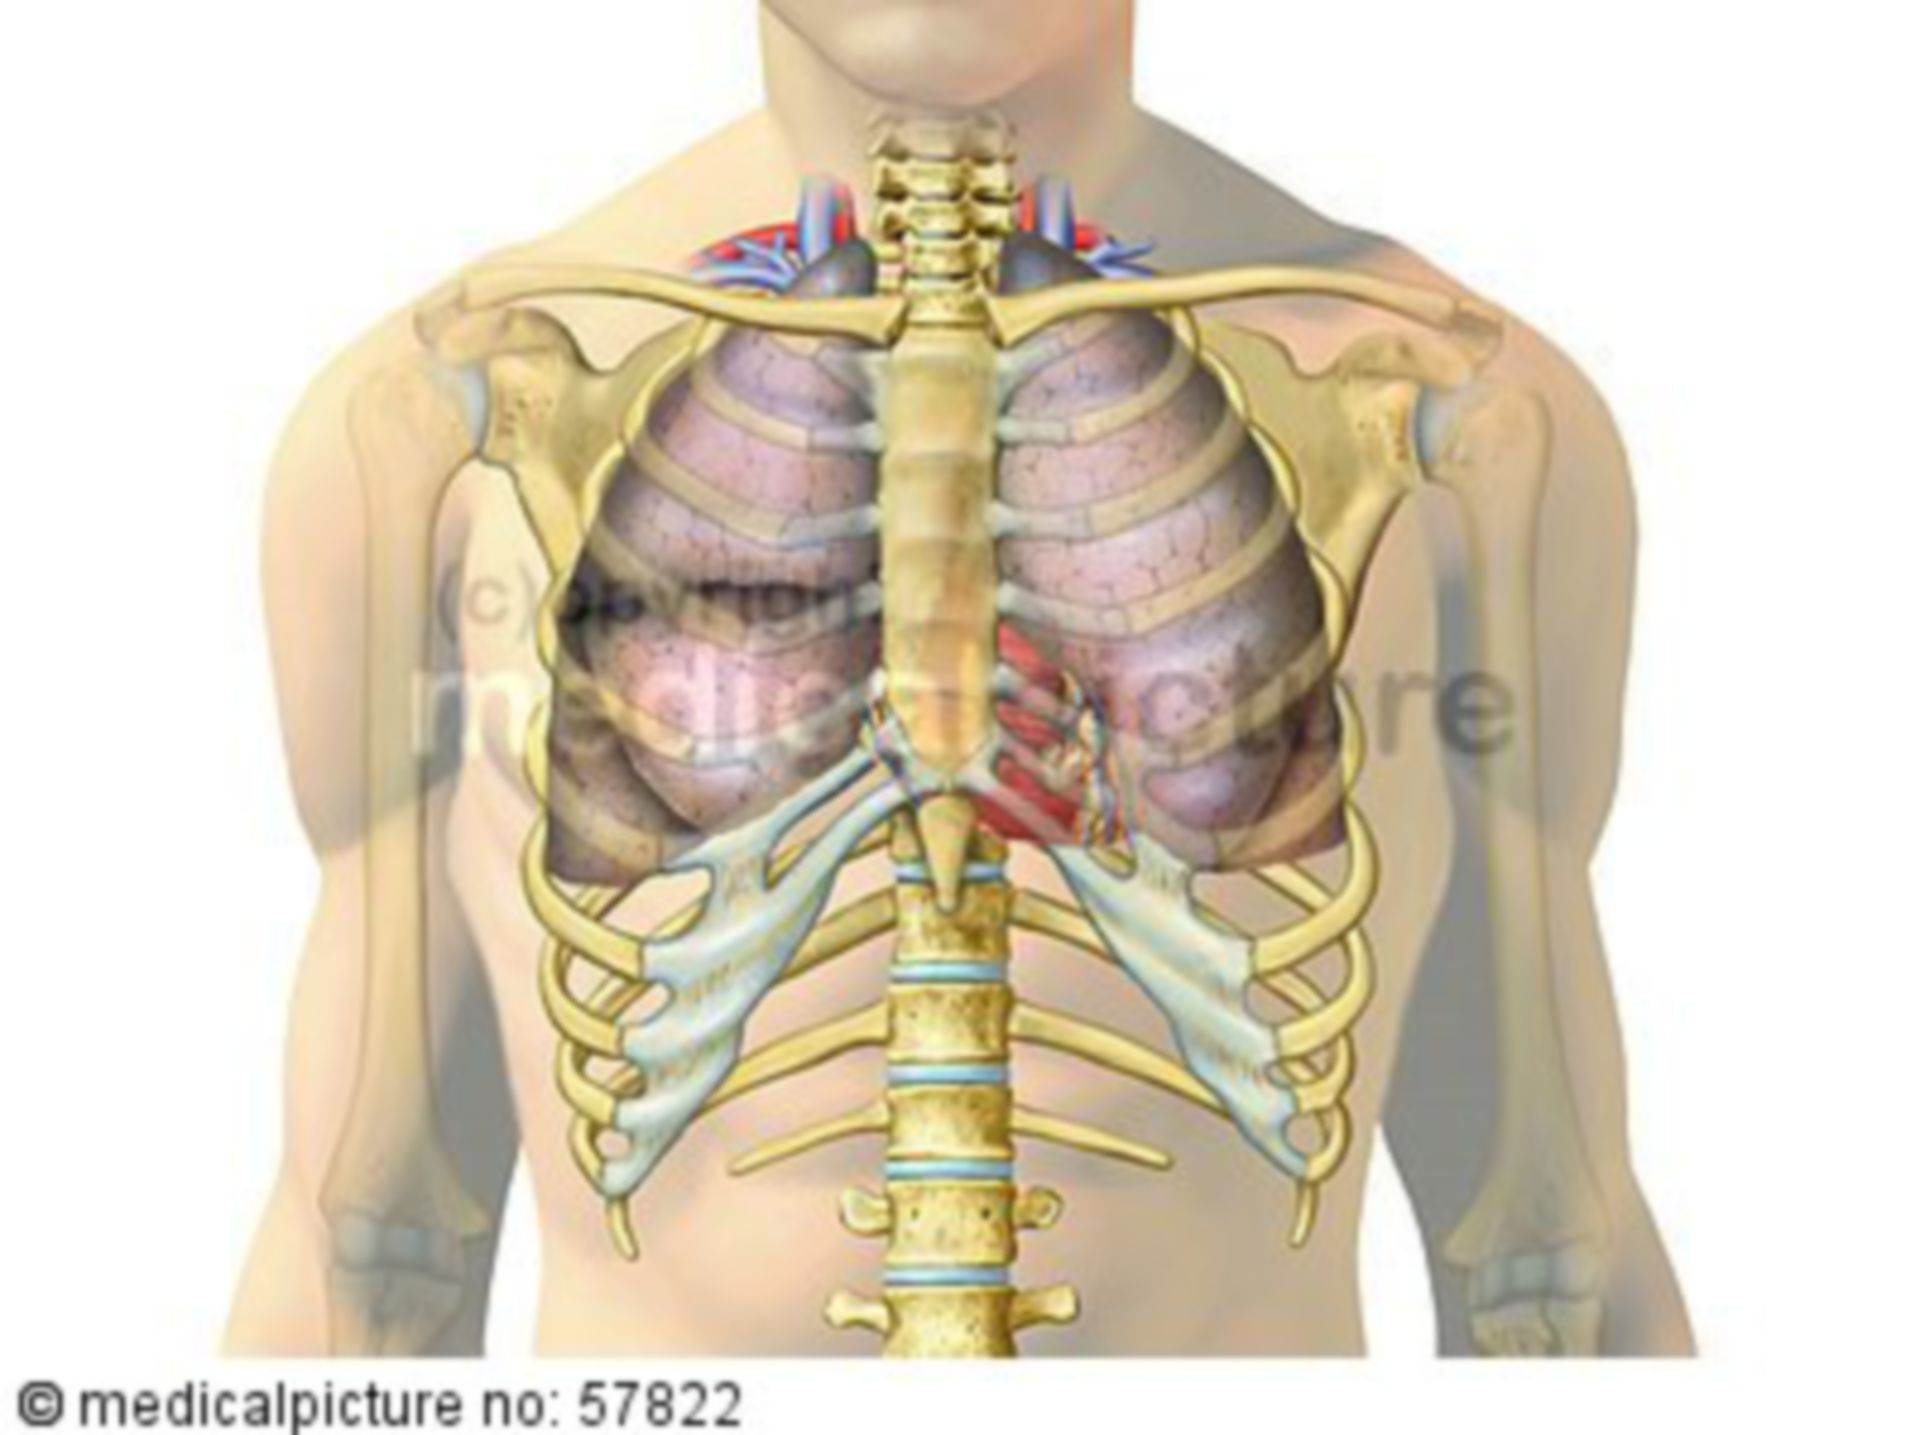 Anatomic Illustrations – Lung and Heart with Vessels in the Thorax